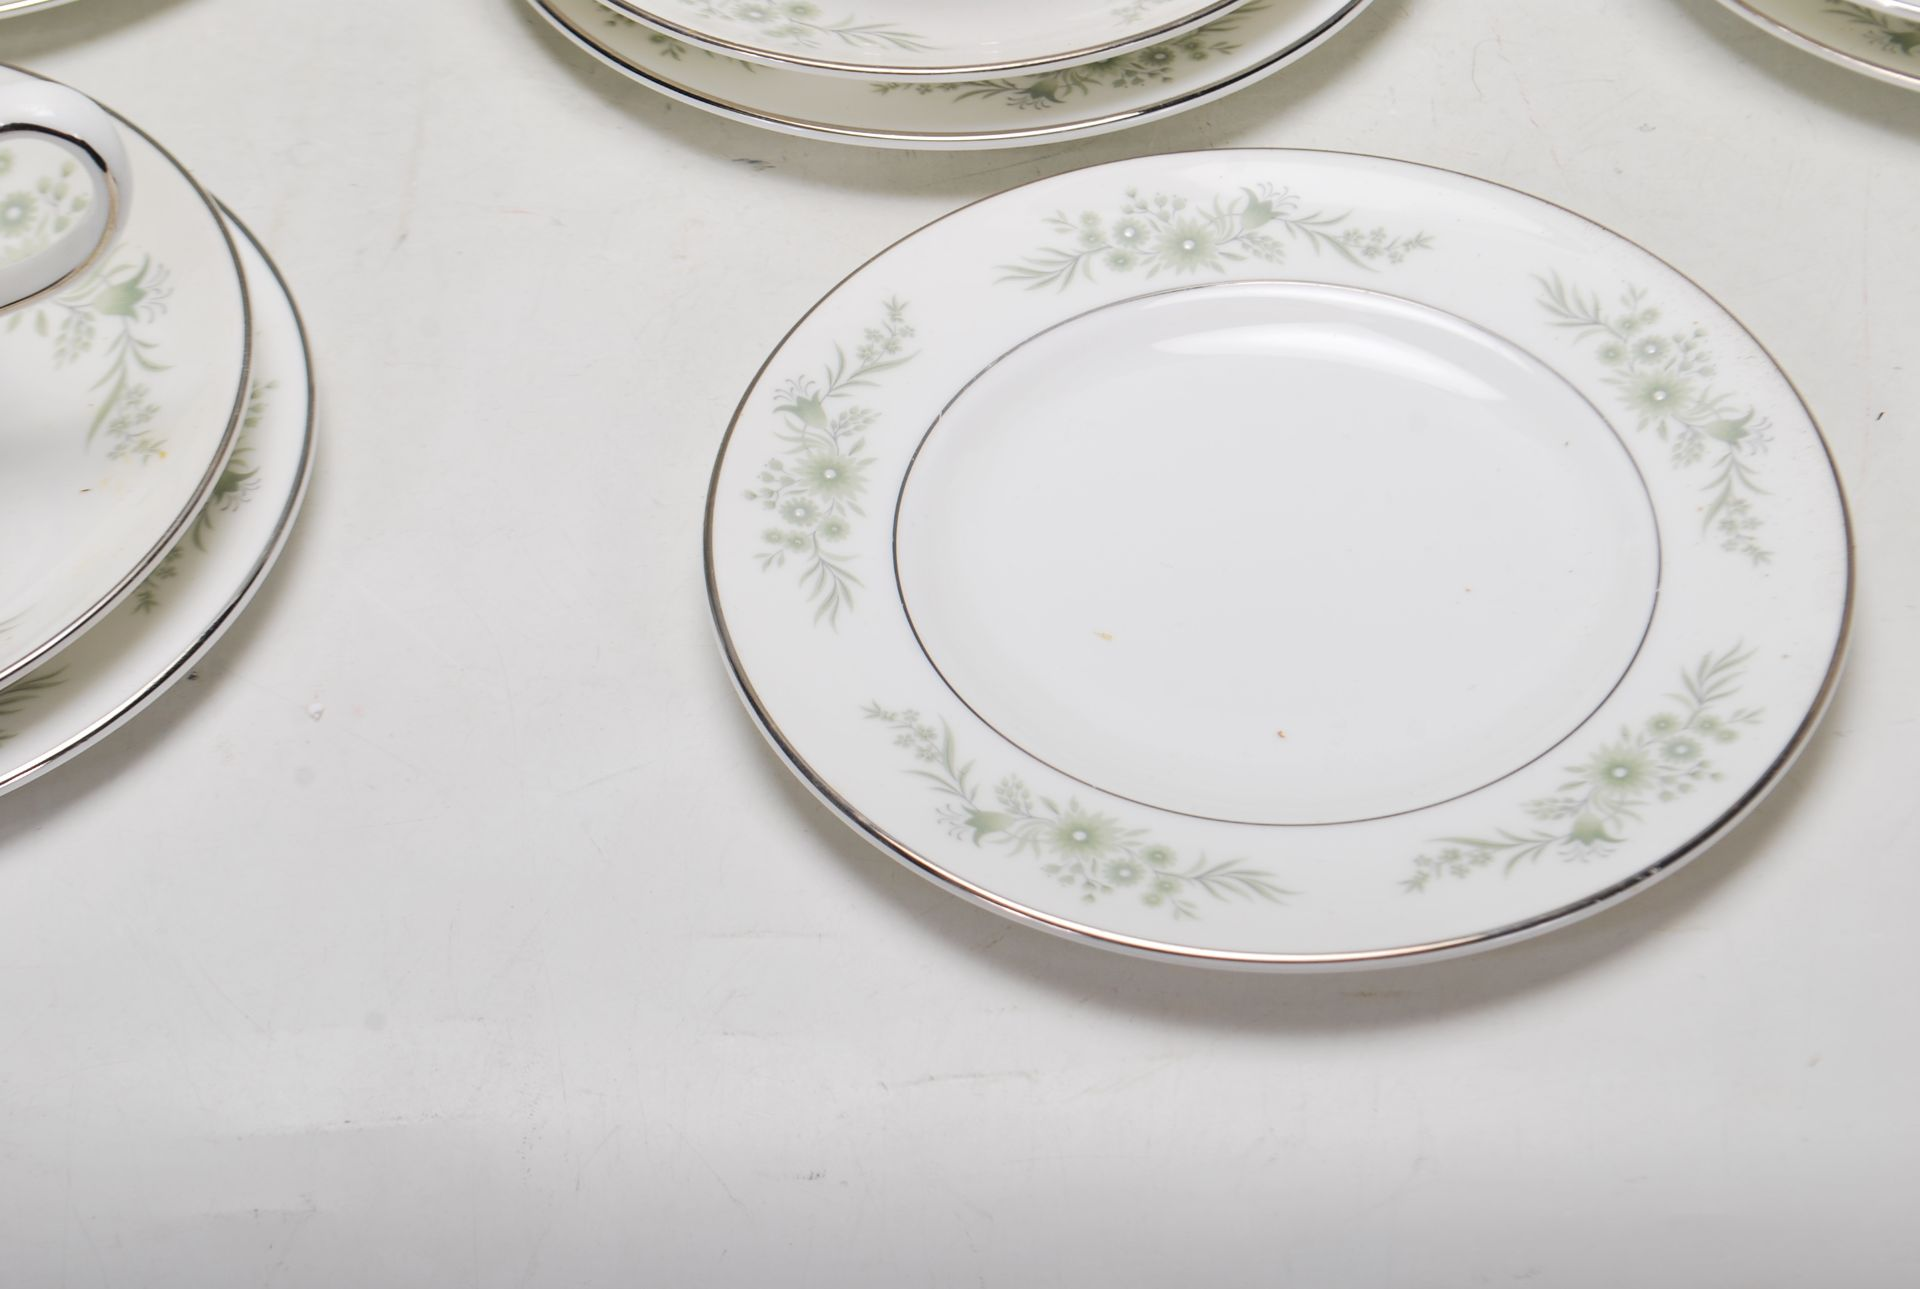 COLLECTION OF LATE 20TH CENTURY WEDGWOOD FINE BONE CHINA - Image 4 of 9